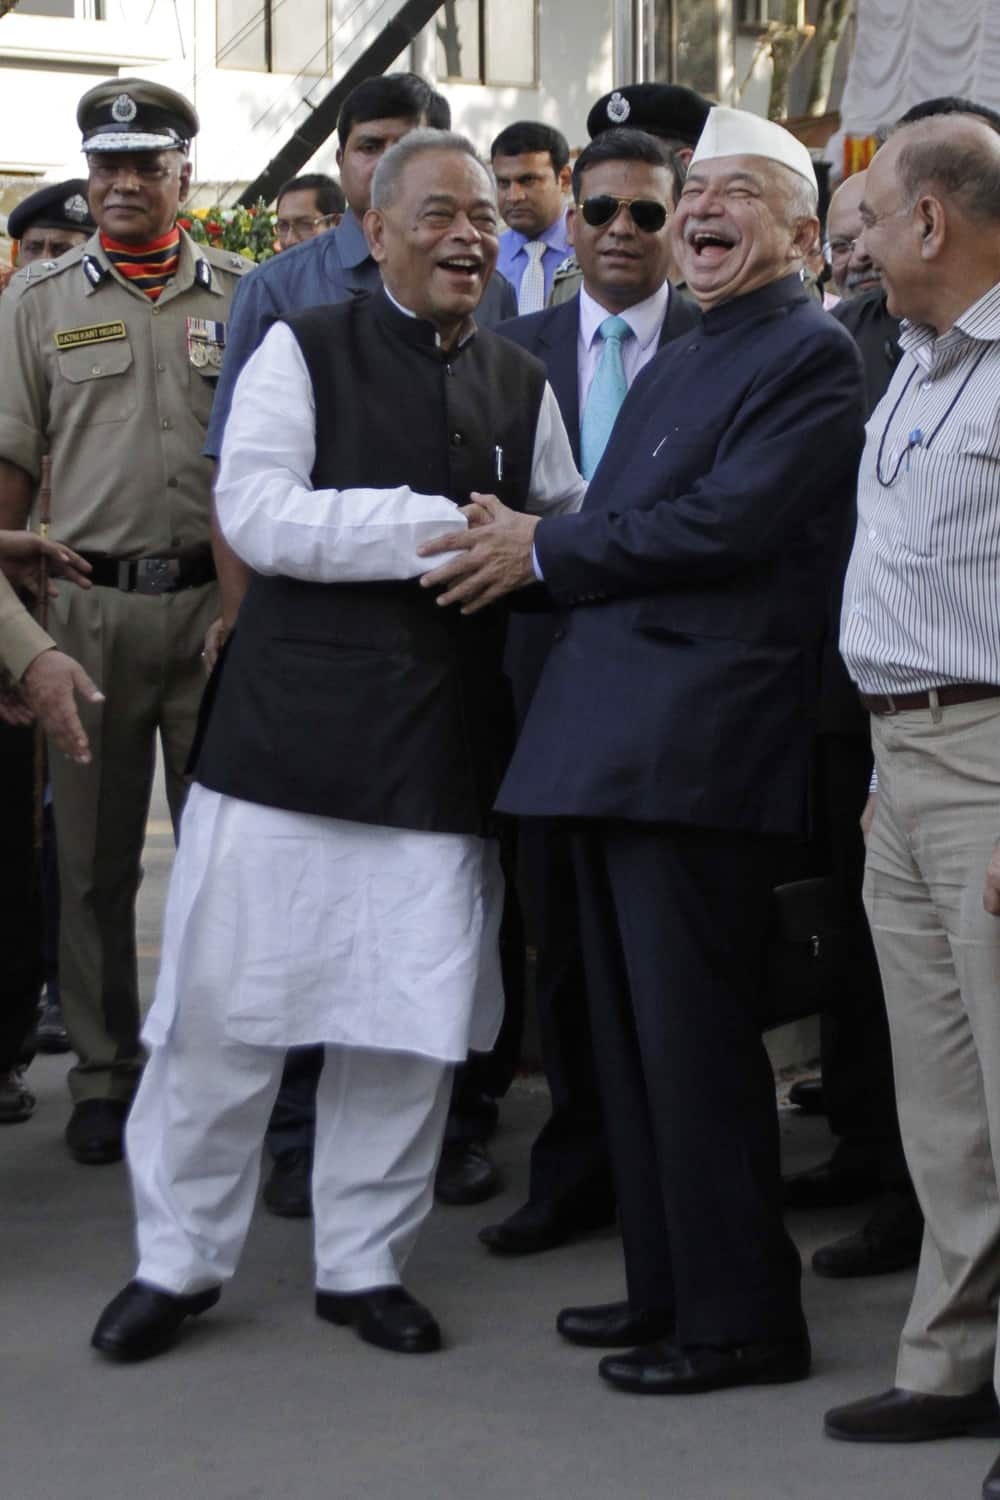 Indian Home Minister Sushilkumar Shinde shares a lighter moment with his Bangladeshi counterpart Muhiuddin Khan Alamgir after the inauguration of the India-Bangladesh joint retreat ceremony in Petrapole, about 100 kilometers (63 miles) east of Kolkata.